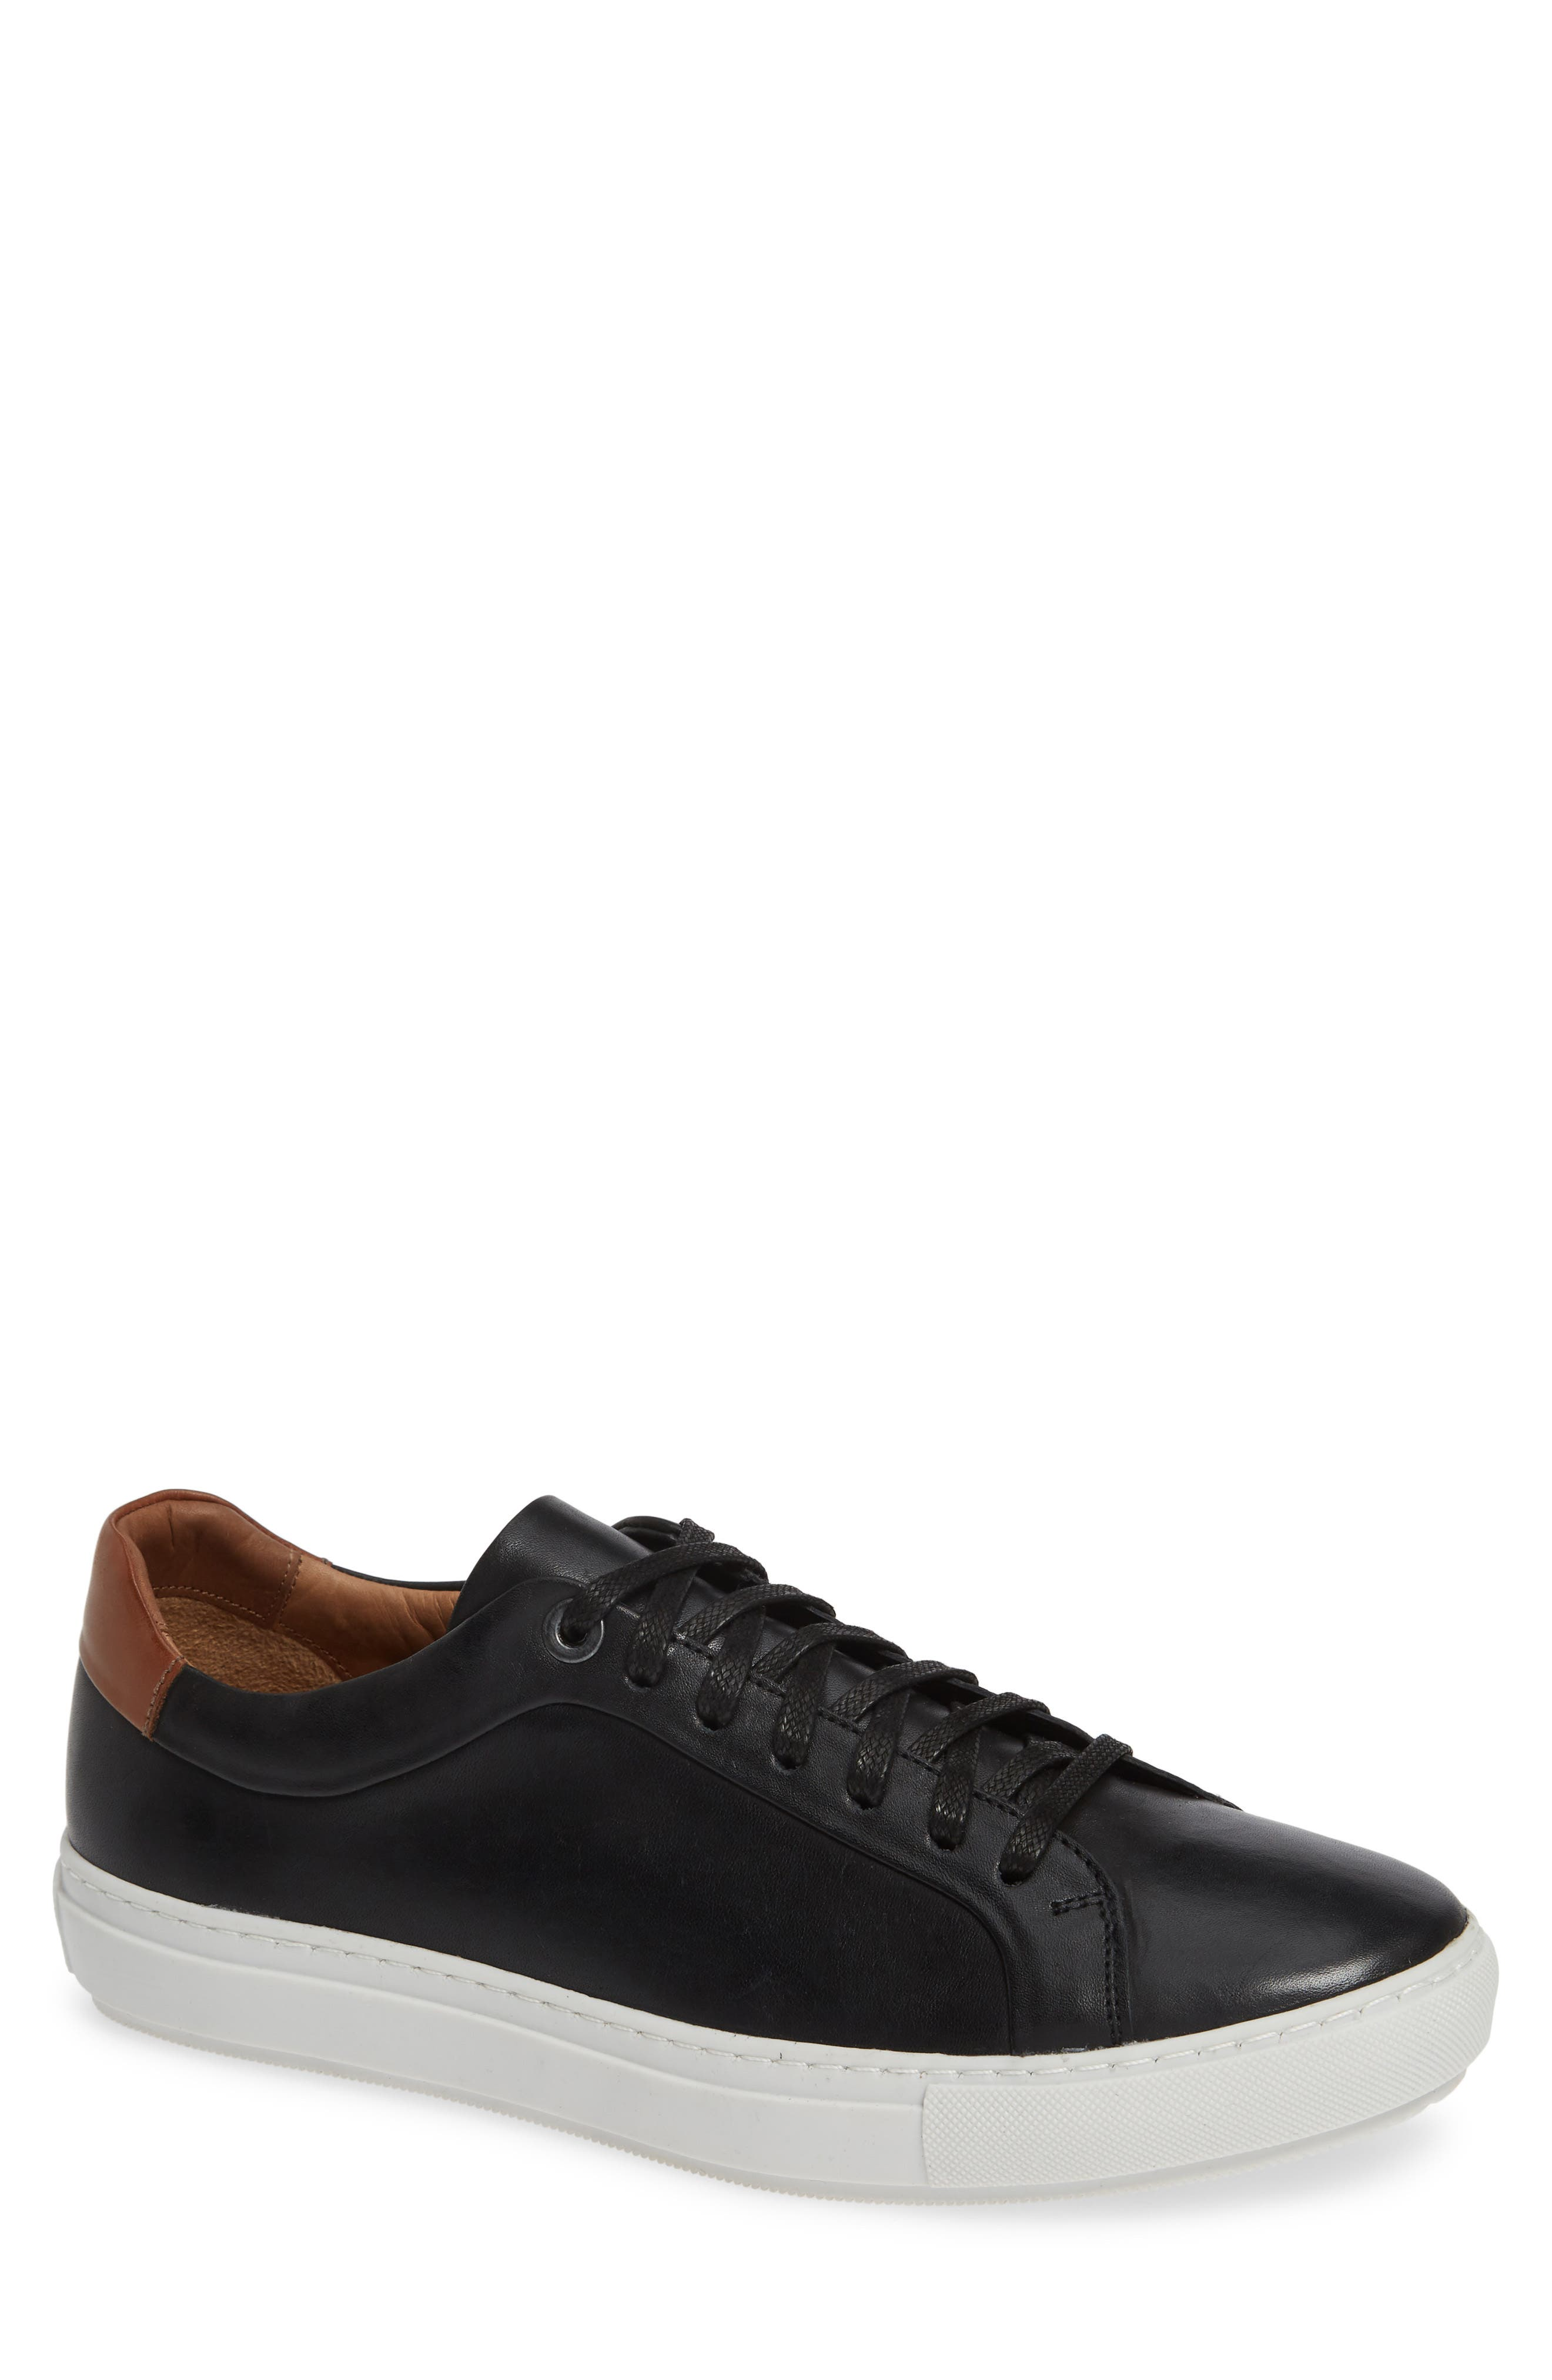 NORDSTROM MEN'S SHOP, Zack Sneaker, Main thumbnail 1, color, BLACK LEATHER